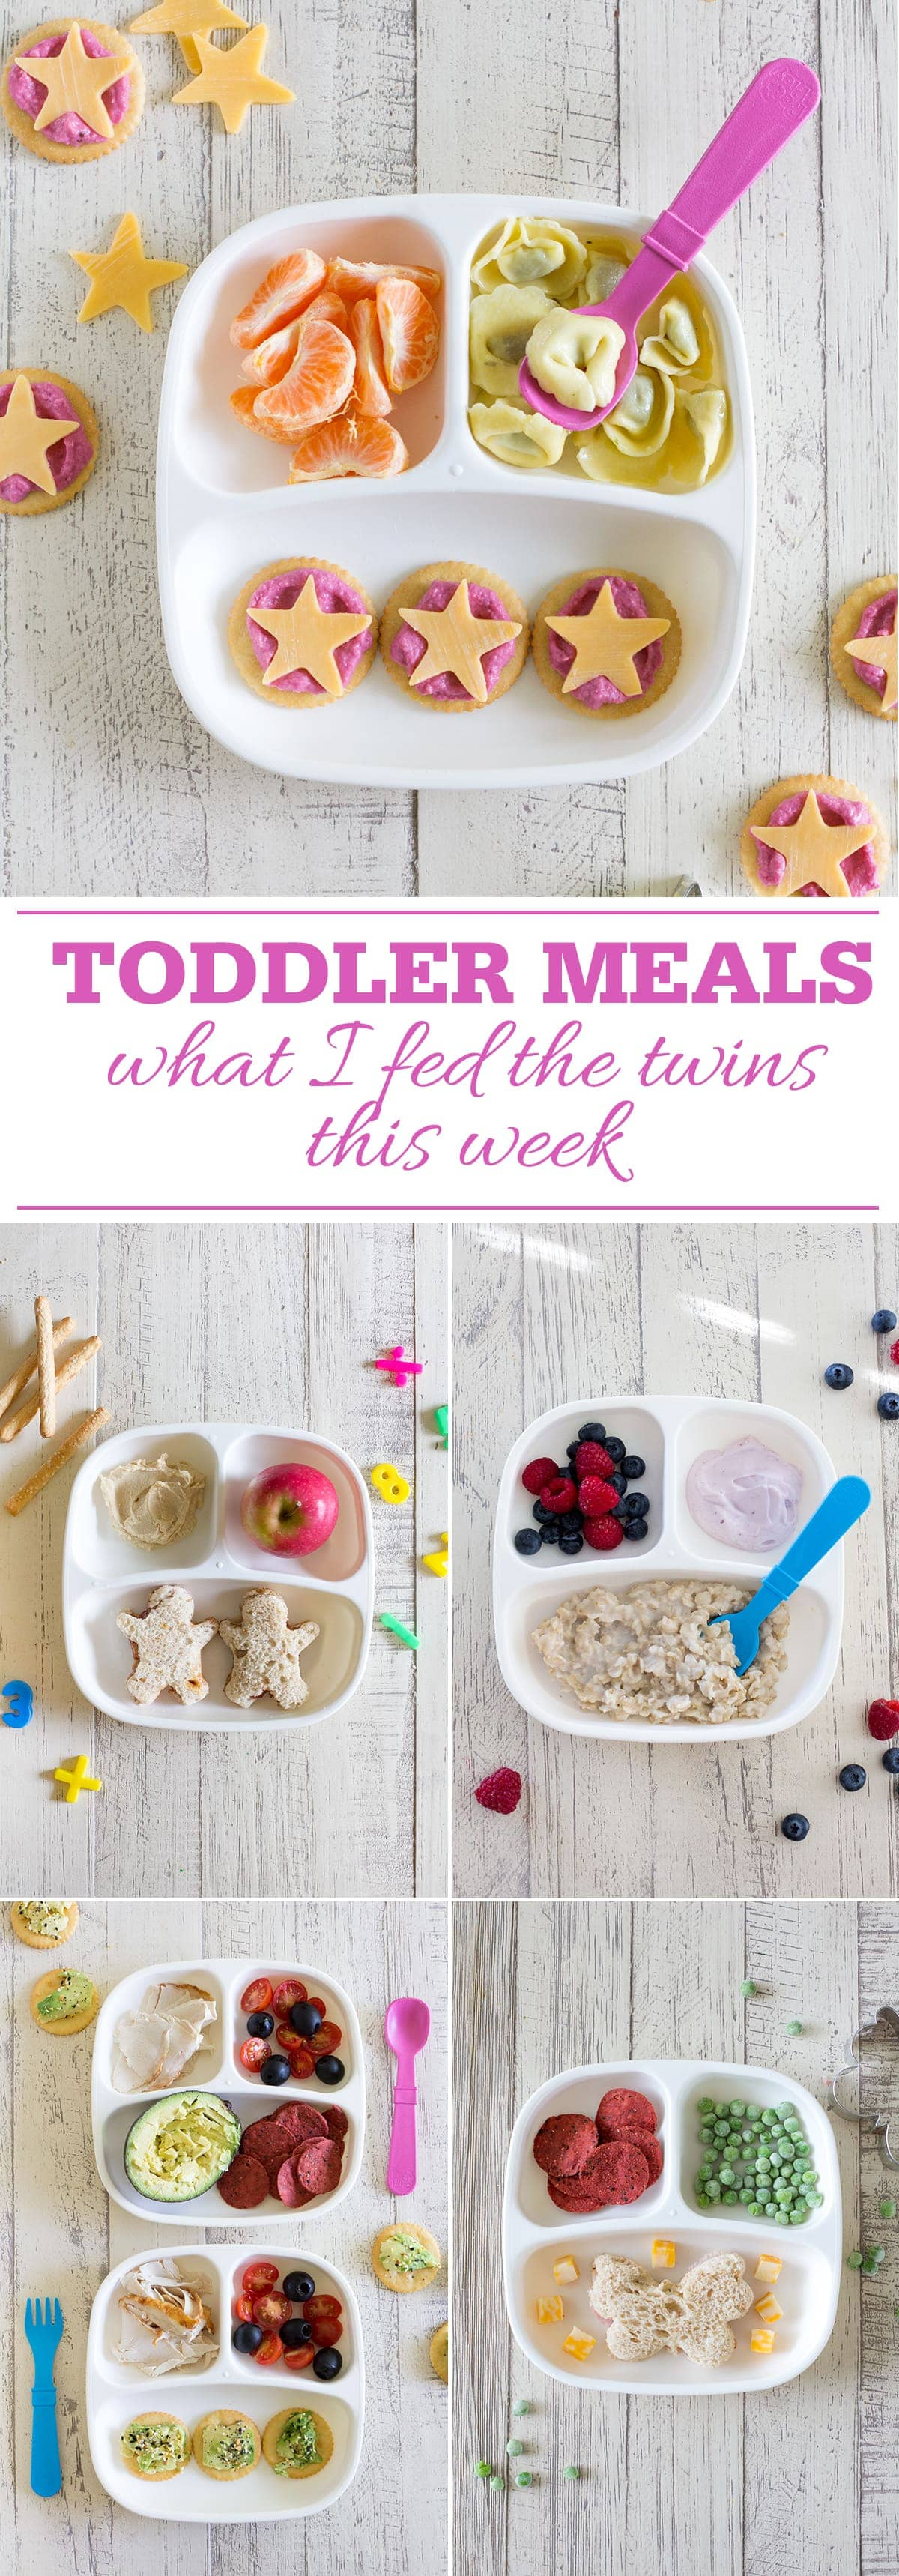 Toddler Meals: What I fed the twins this week. Healthy kid meals you can make for your toddlers or school age kids that are healthy, fun and delicious!